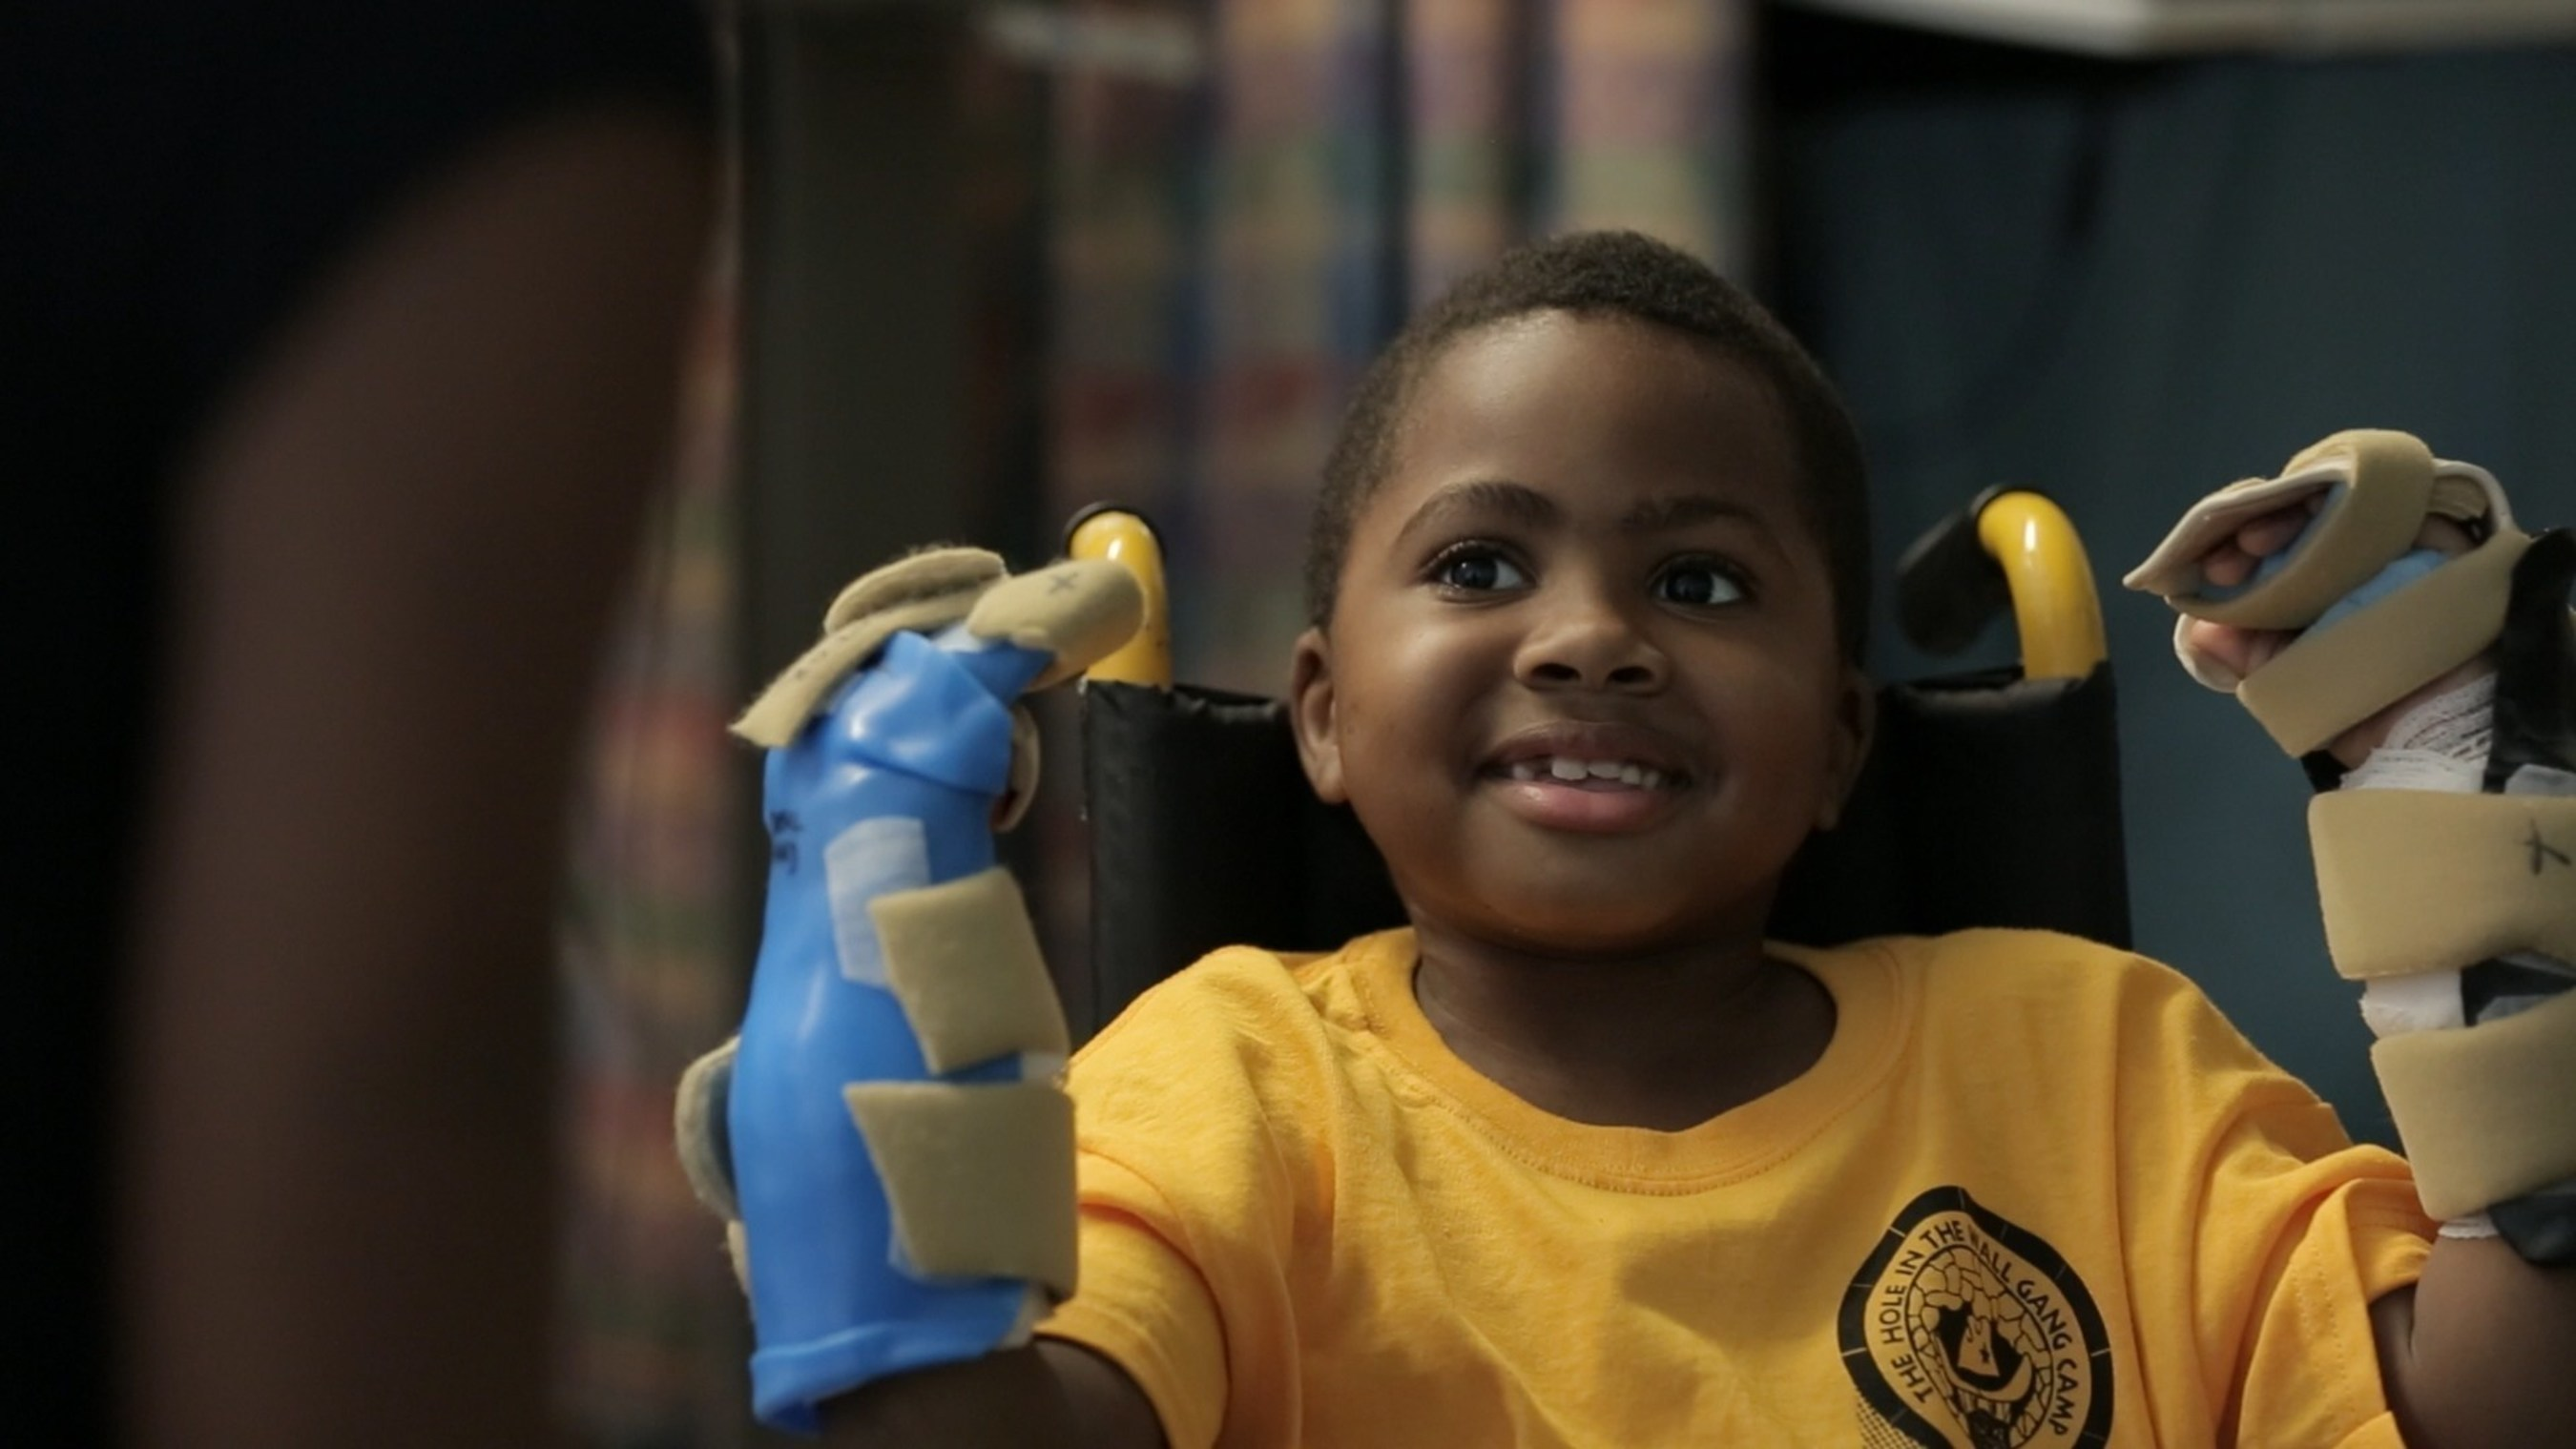 Surgeons at The Children's Hospital of Philadelphia (CHOP) joined with colleagues from Penn Medicine recently to complete the world's first bilateral hand transplant on a child. Earlier this month, the surgical team successfully transplanted donor hands and forearms onto eight-year-old Zion Harvey who, several years earlier, had undergone amputation of his hands and feet and a kidney transplant following a serious infection.